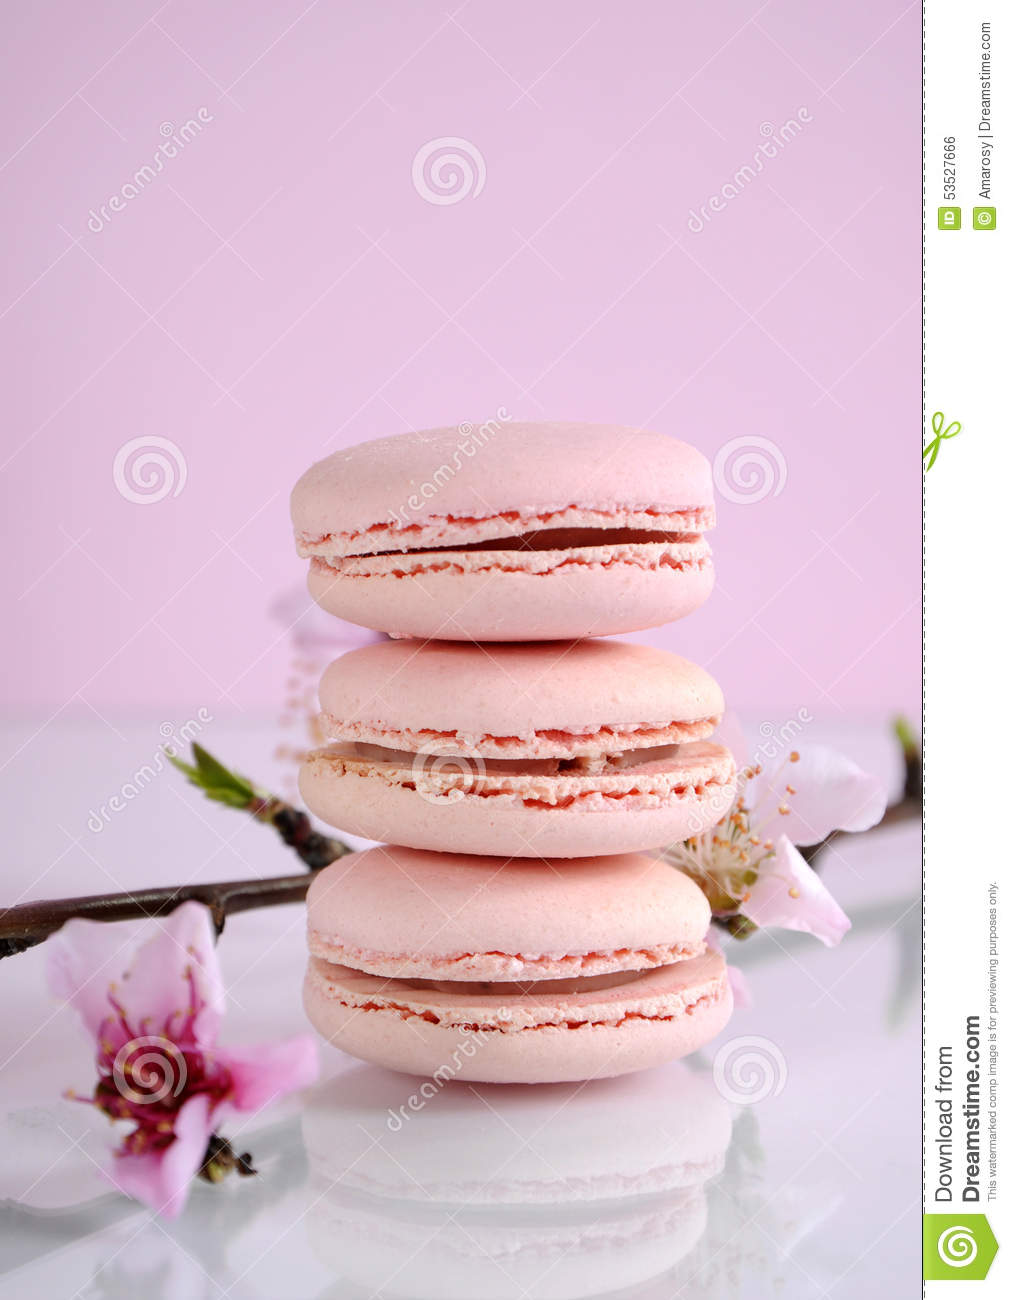 shabby chic vintage style pink macarons stock photo image of chic french 53527666. Black Bedroom Furniture Sets. Home Design Ideas